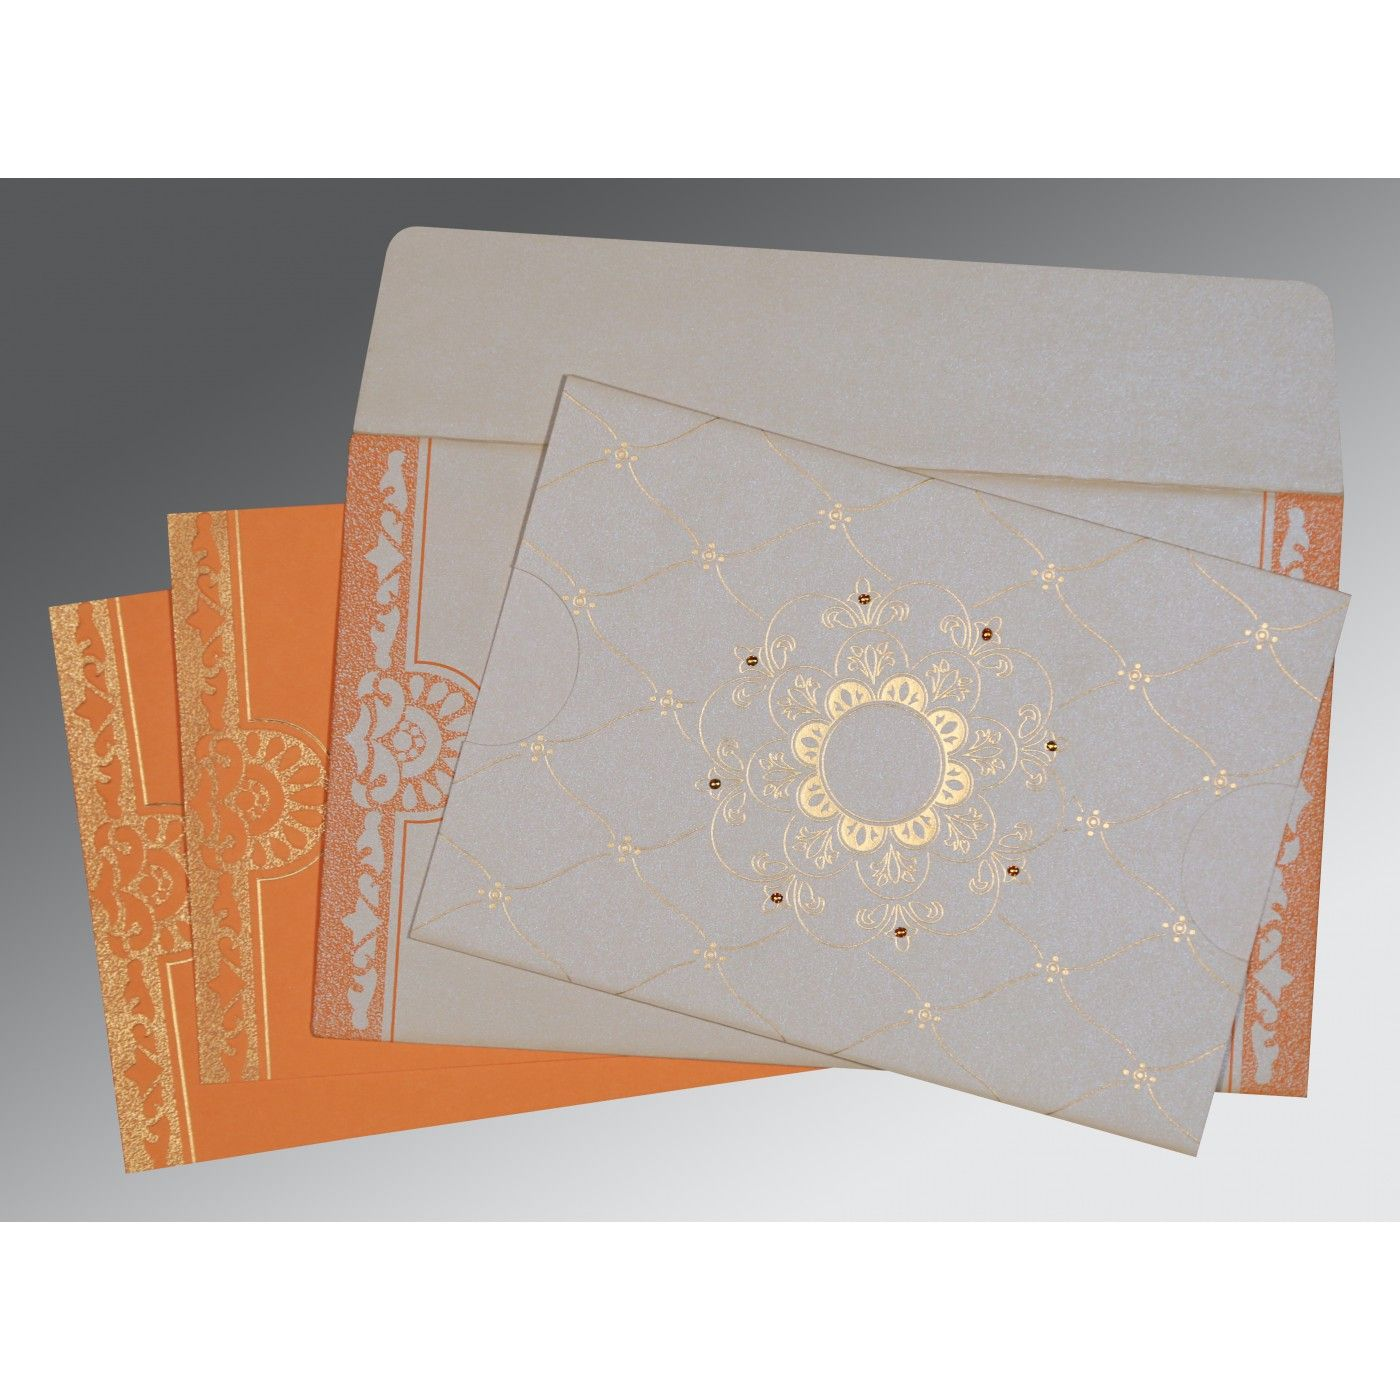 OFF-WHITE SHIMMERY FLORAL THEMED - SCREEN PRINTED WEDDING CARD : CW-8227D - IndianWeddingCards